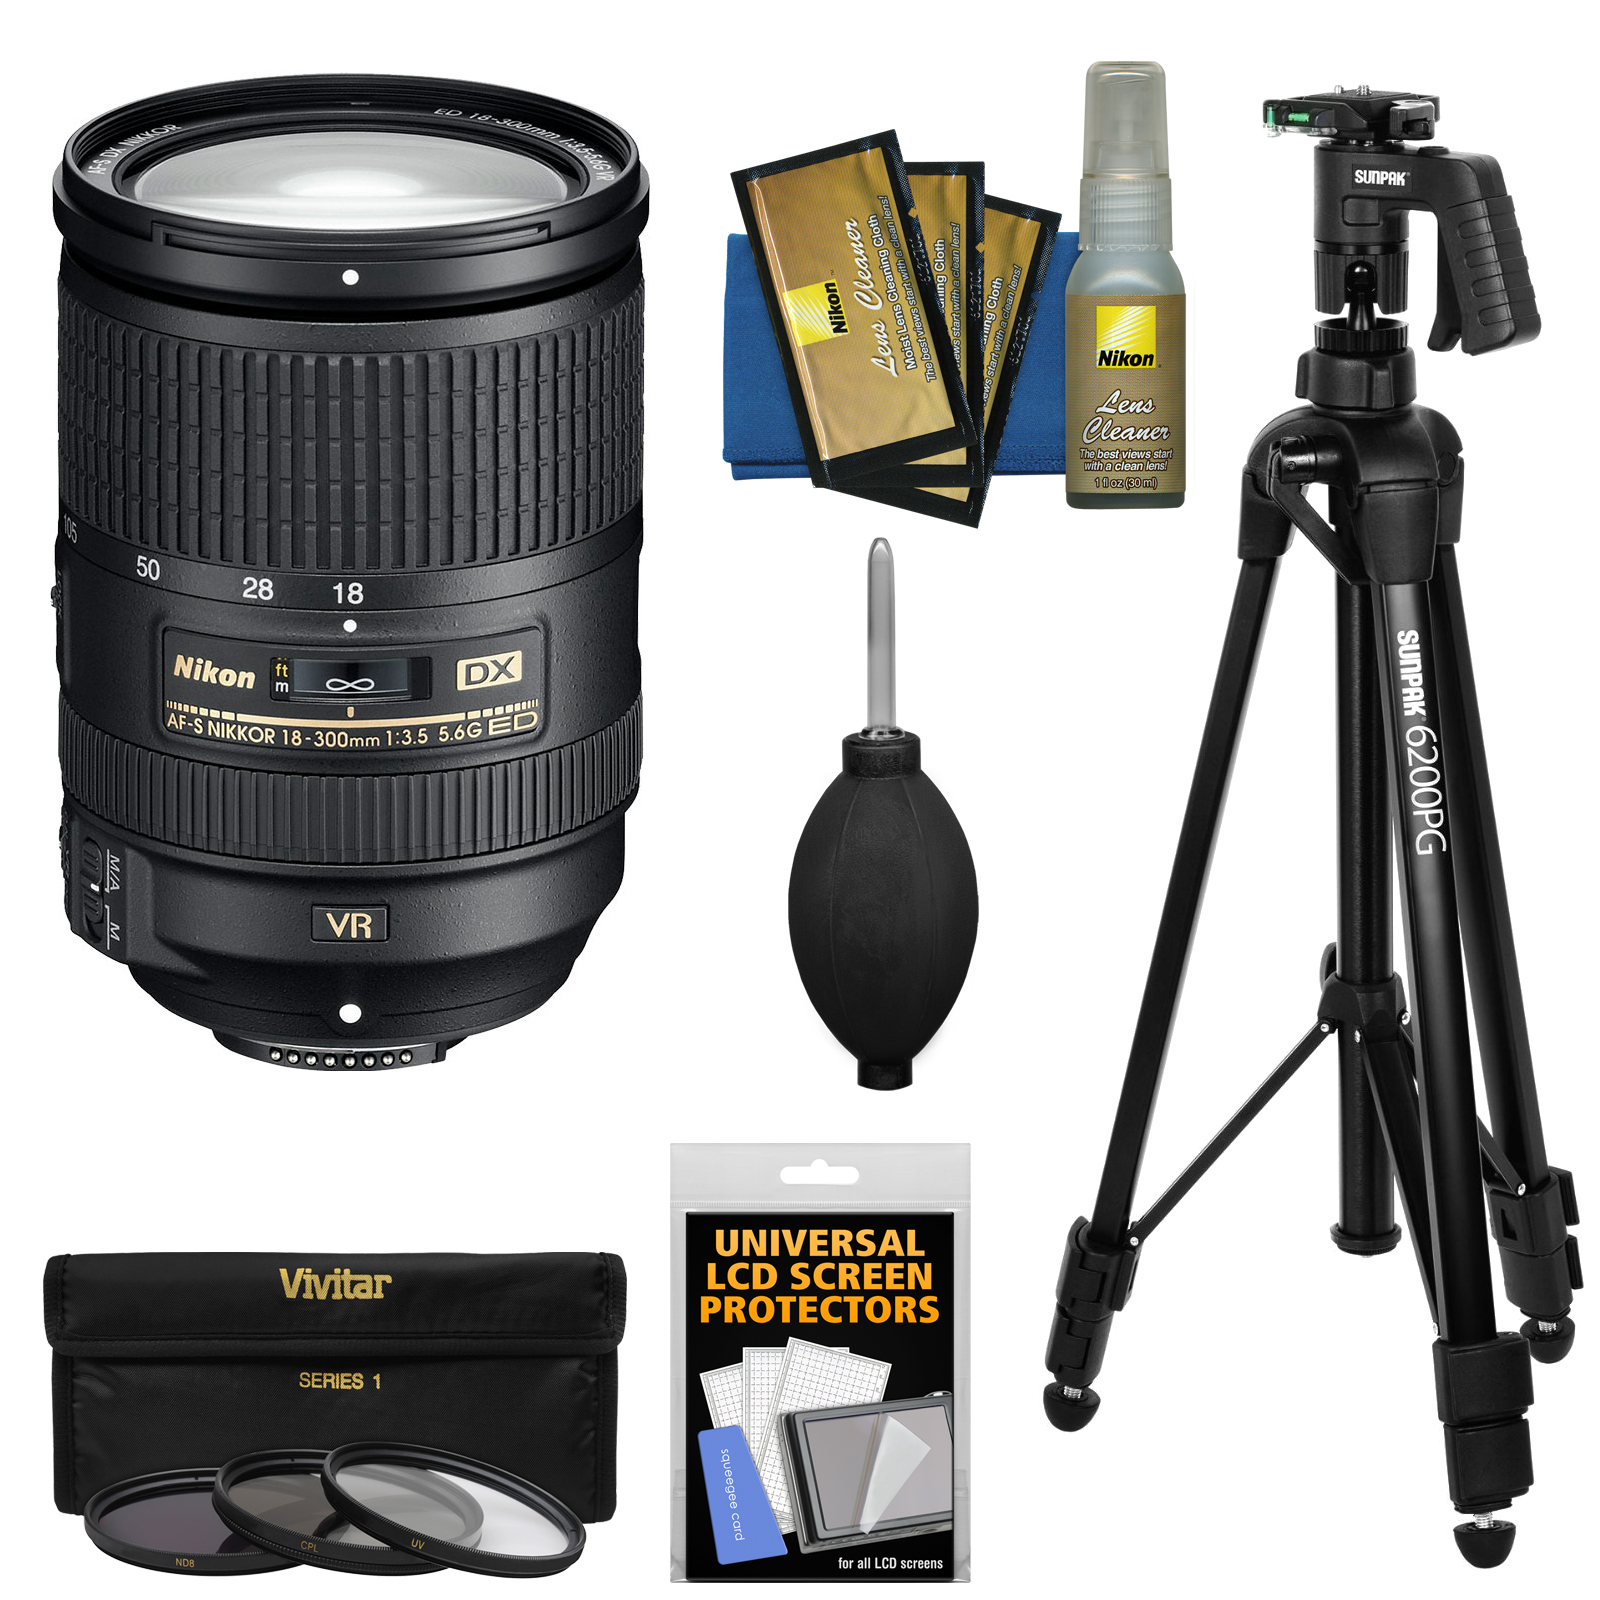 Nikon 18-300mm f/3.5-5.6G VR DX ED AF-S Nikkor-Zoom Lens + Pistol Grip Tripod + 3 Filters Kit for D3200, D3300, D5300, D5500, D7100, D7200 DSLR Camera